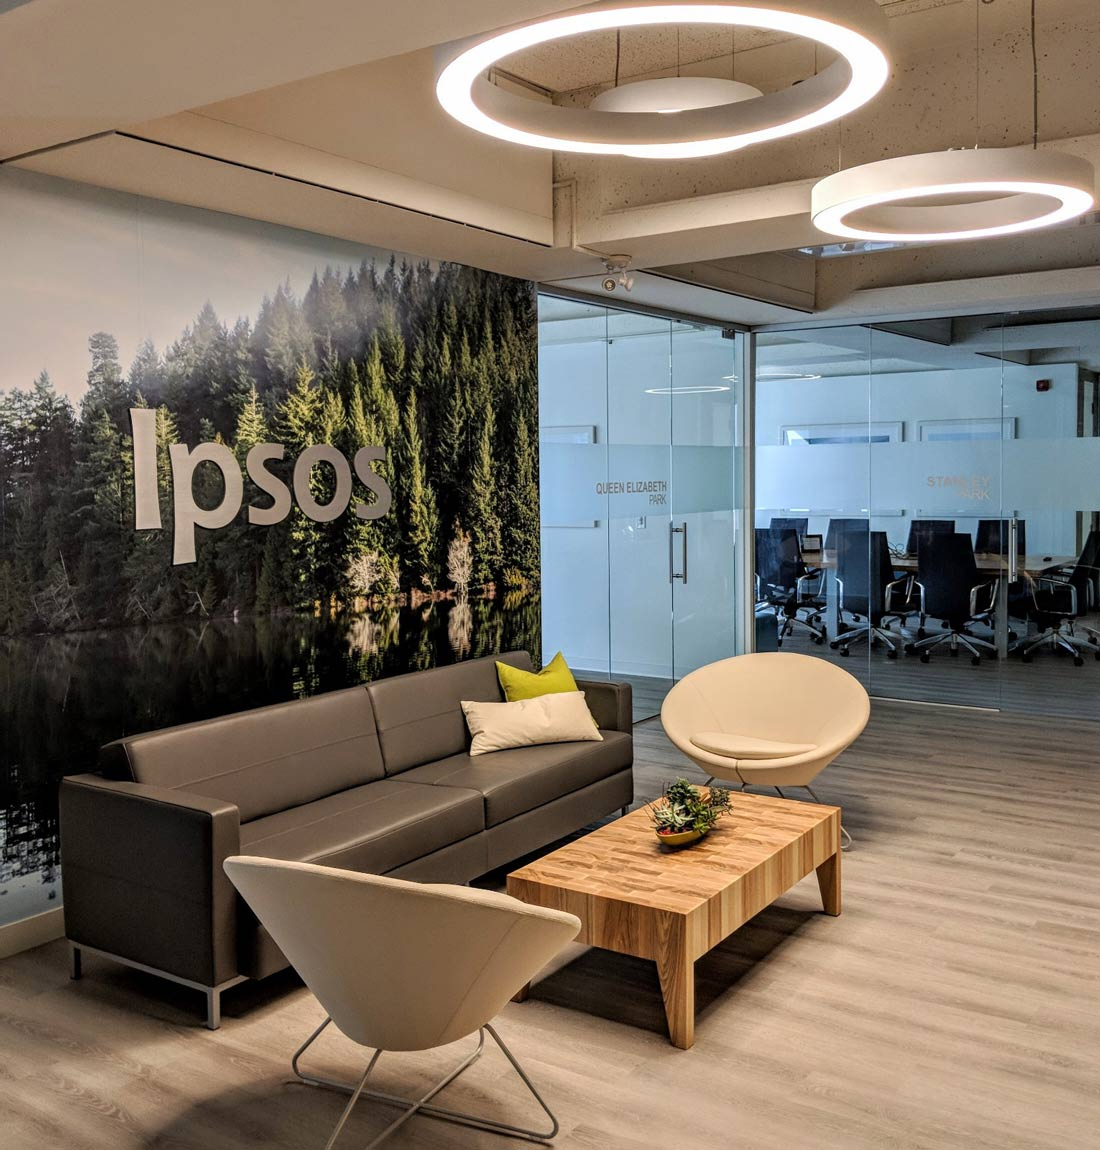 Ipsos - Waiting Room